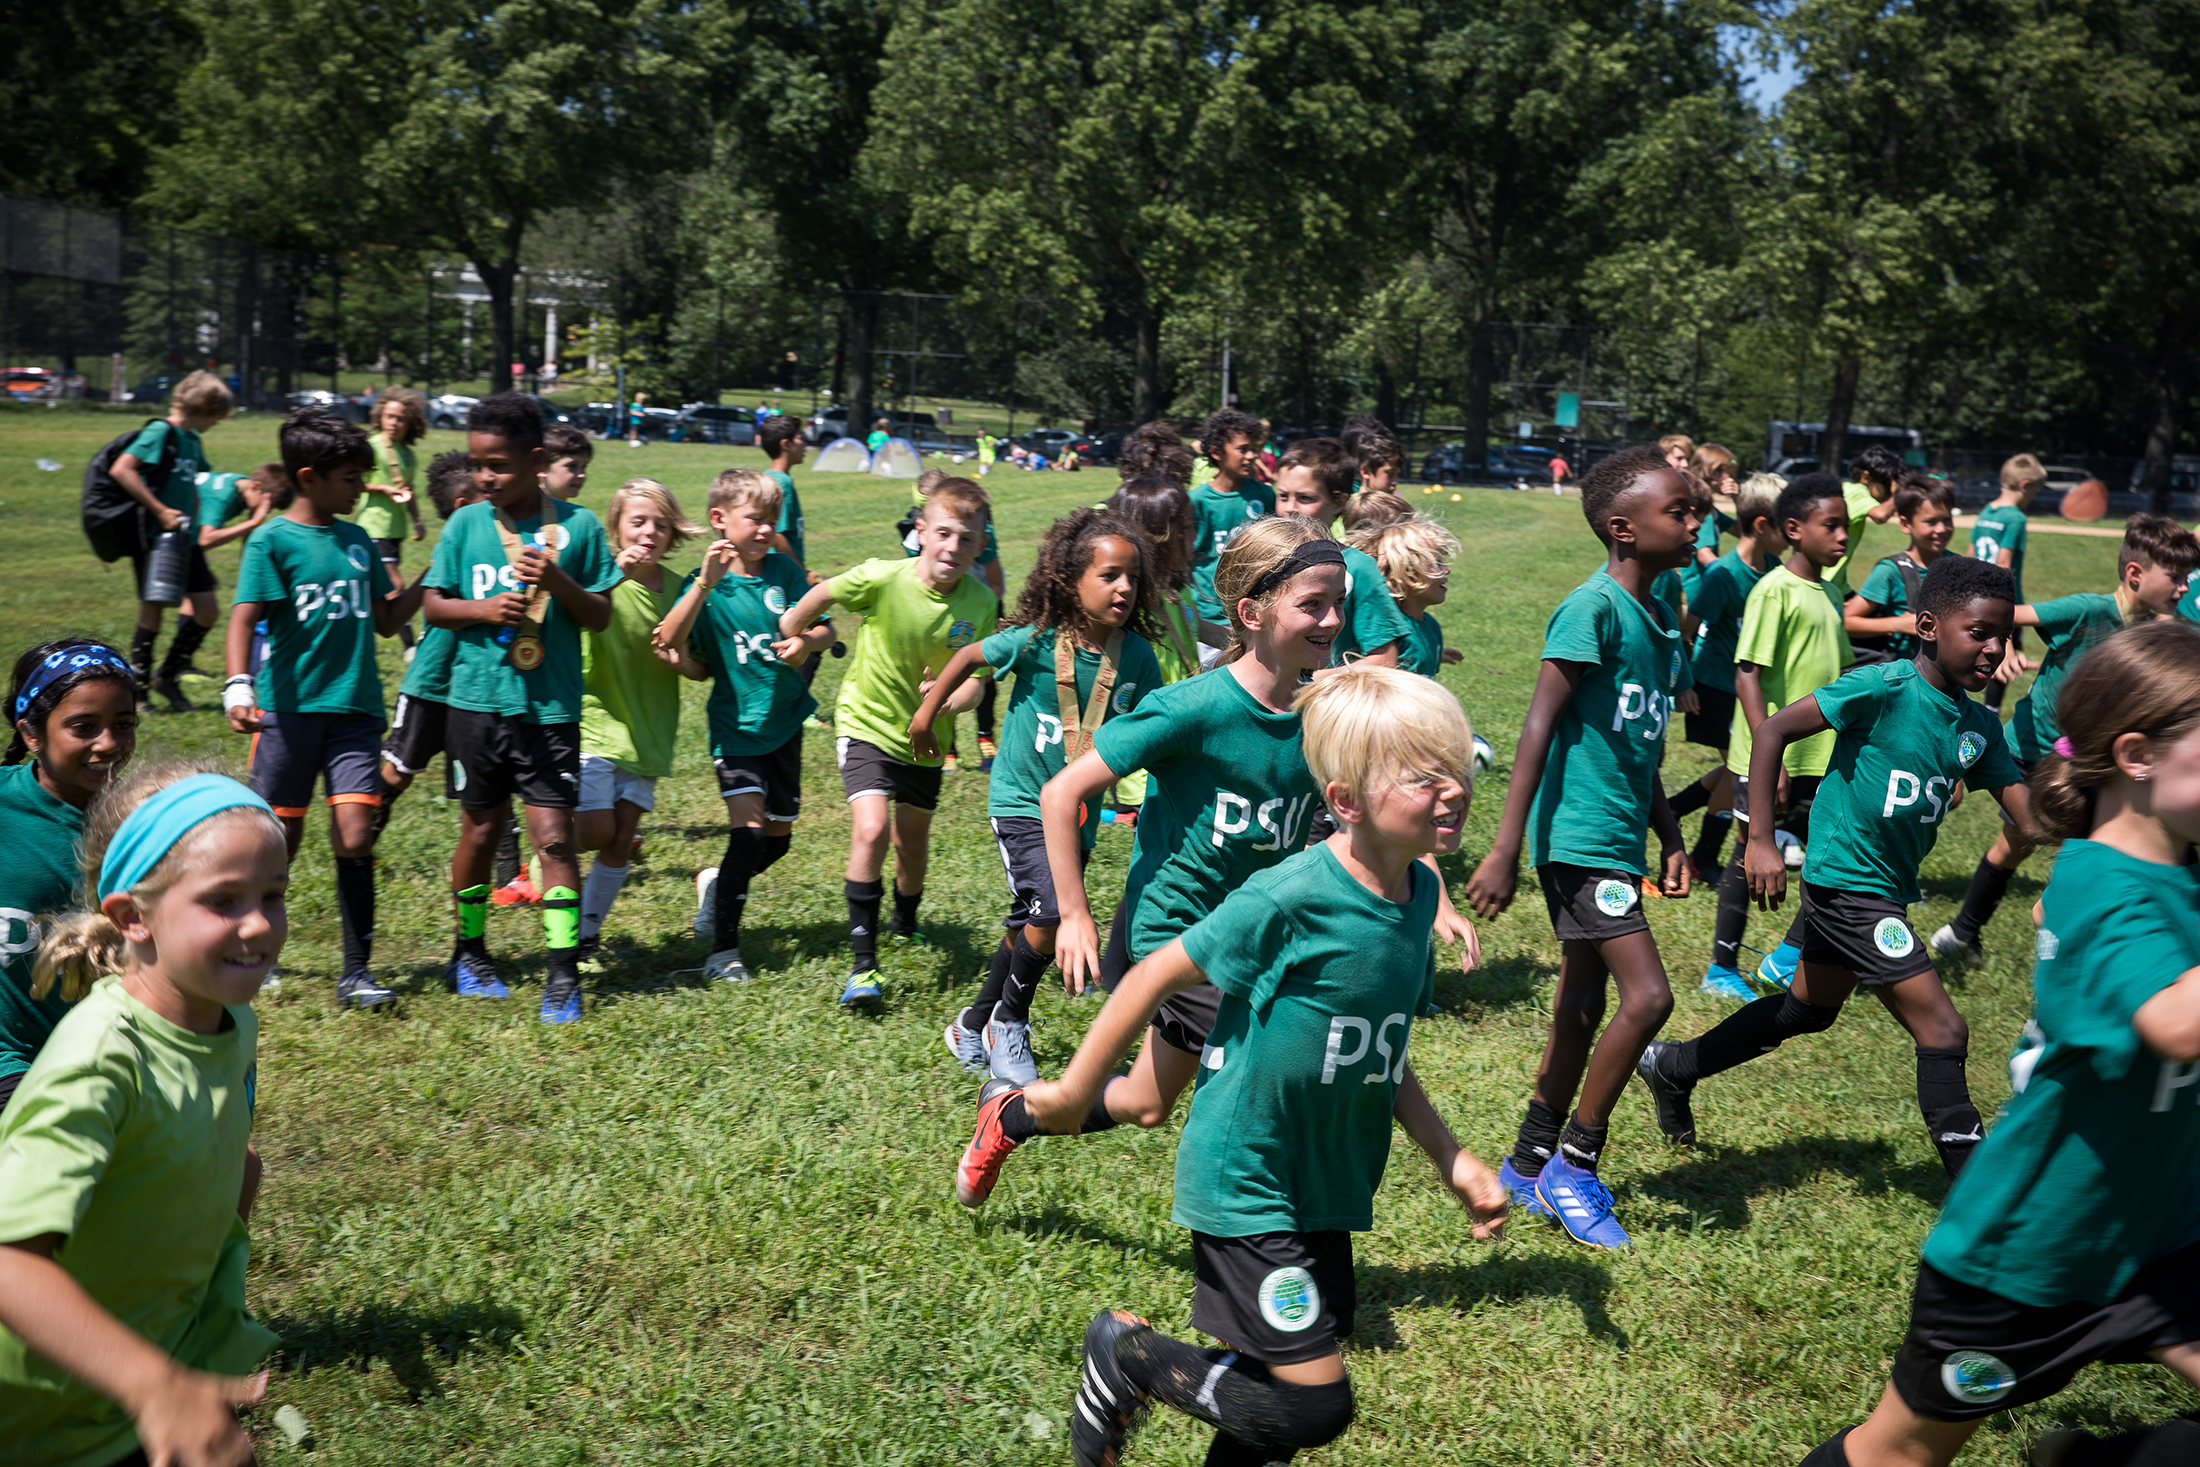 Park Slope United (PSU) pre-season camp at Prospect Park Parade Grounds on August 31, 2019 in Brooklyn, NY.  Photograph by Michael Nagle